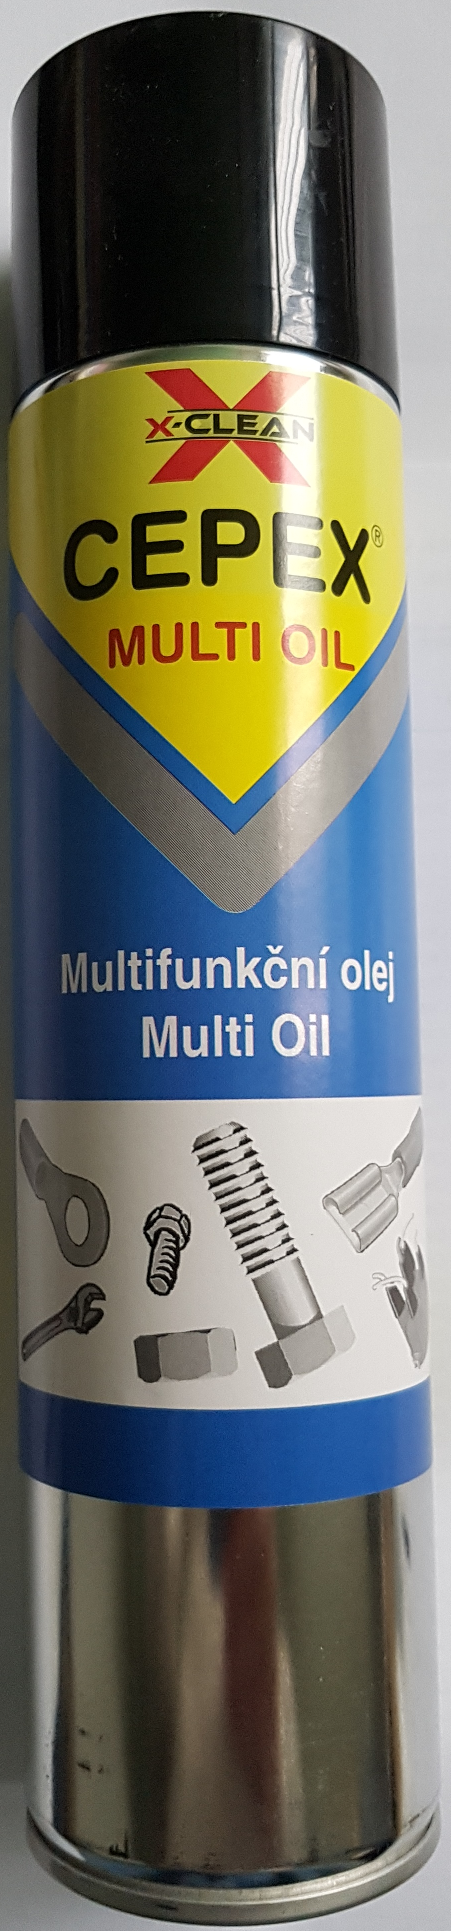 CEPEX Multi Oil 400 ml